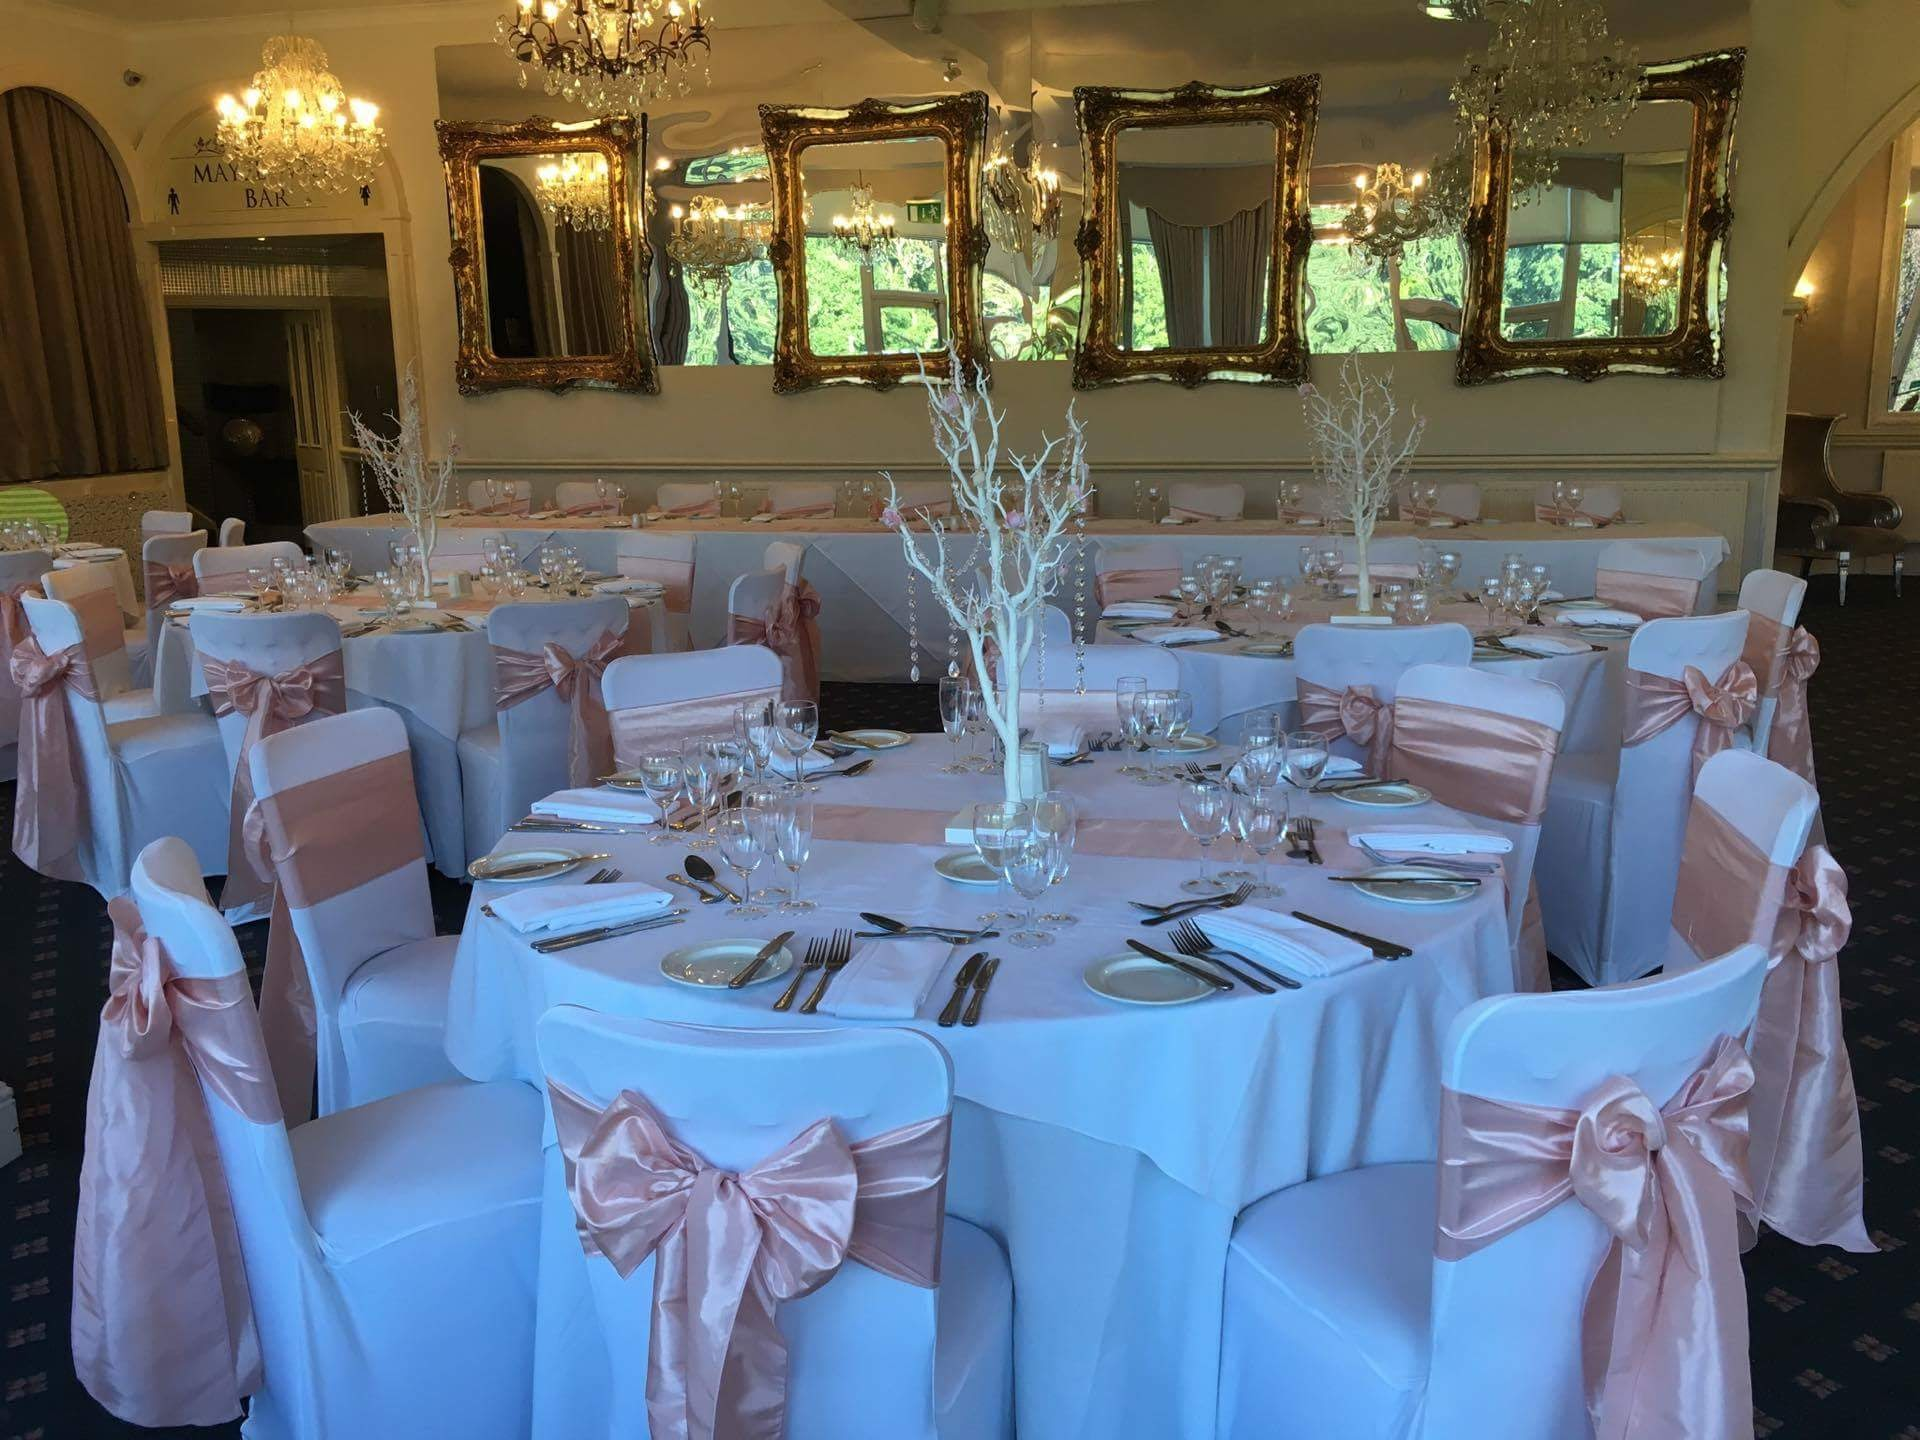 Blush Pink satin sashes